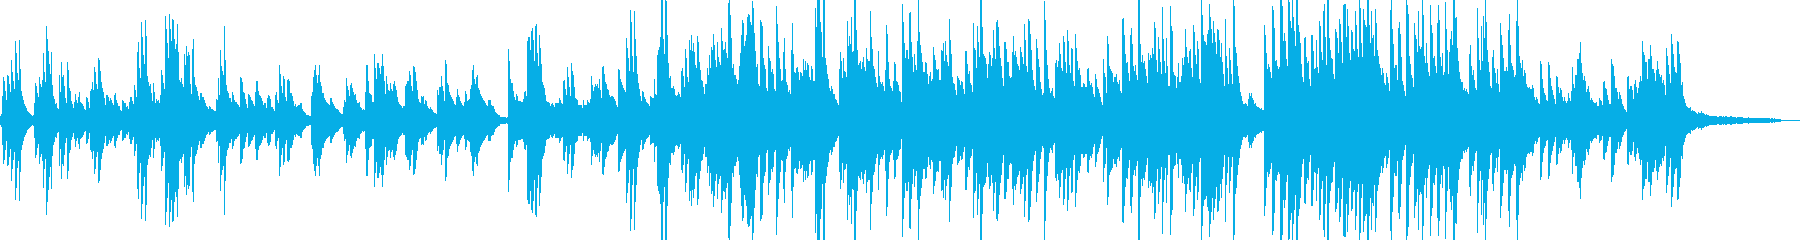 Wedding / Impressive bright and gorgeous piano solo's reproduced waveform